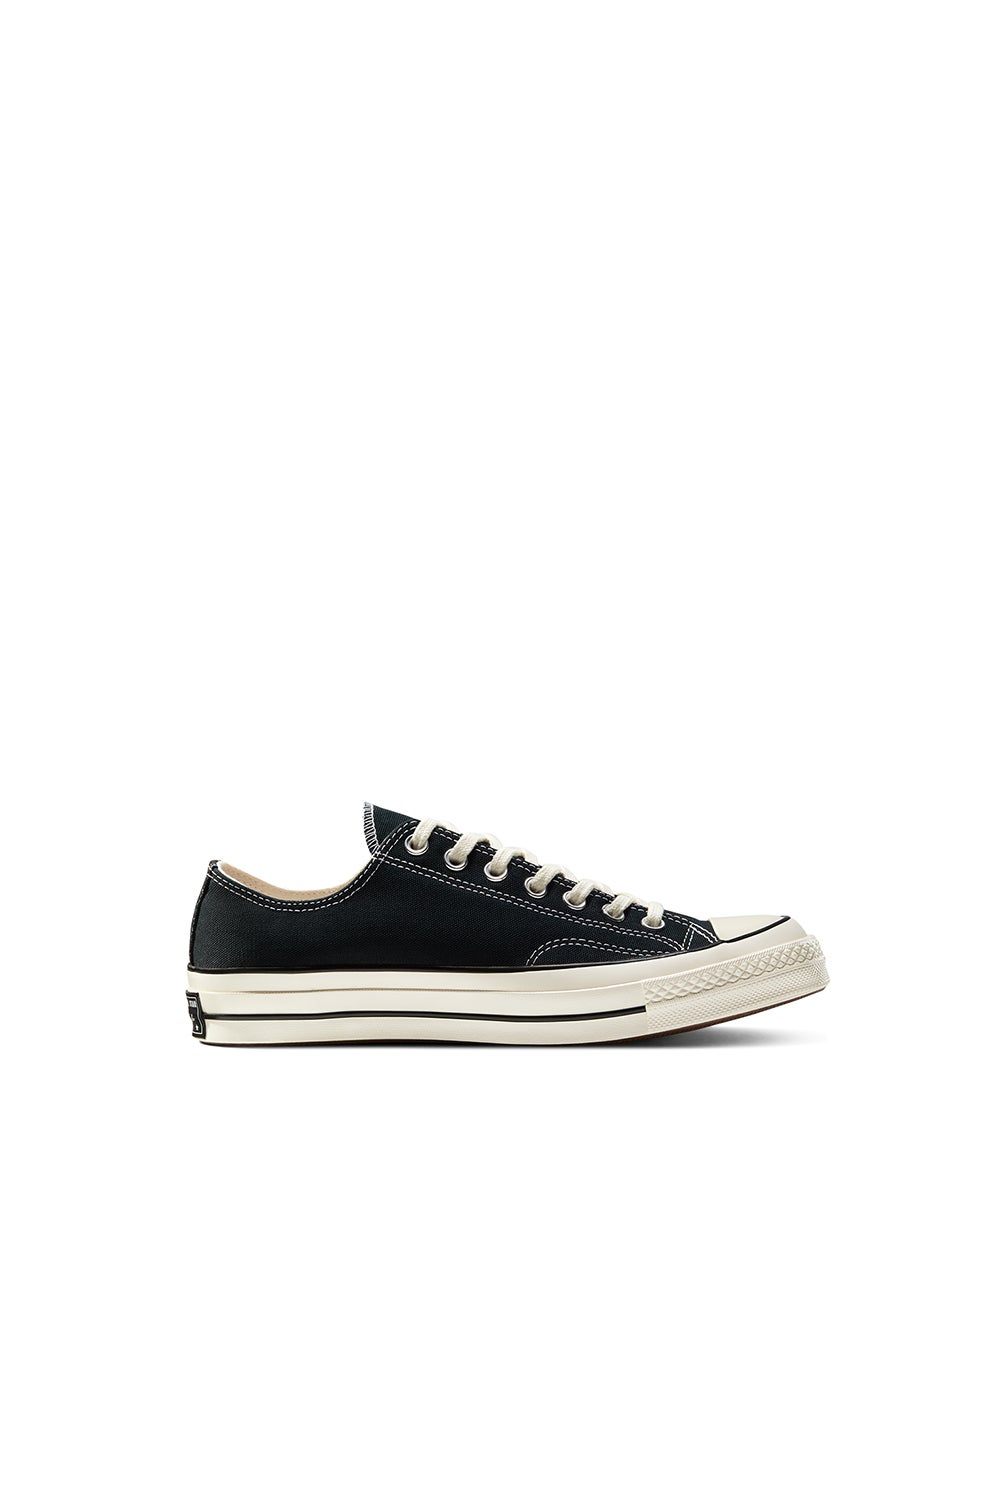 Converse Chuck Taylor All Star 70 Low Black